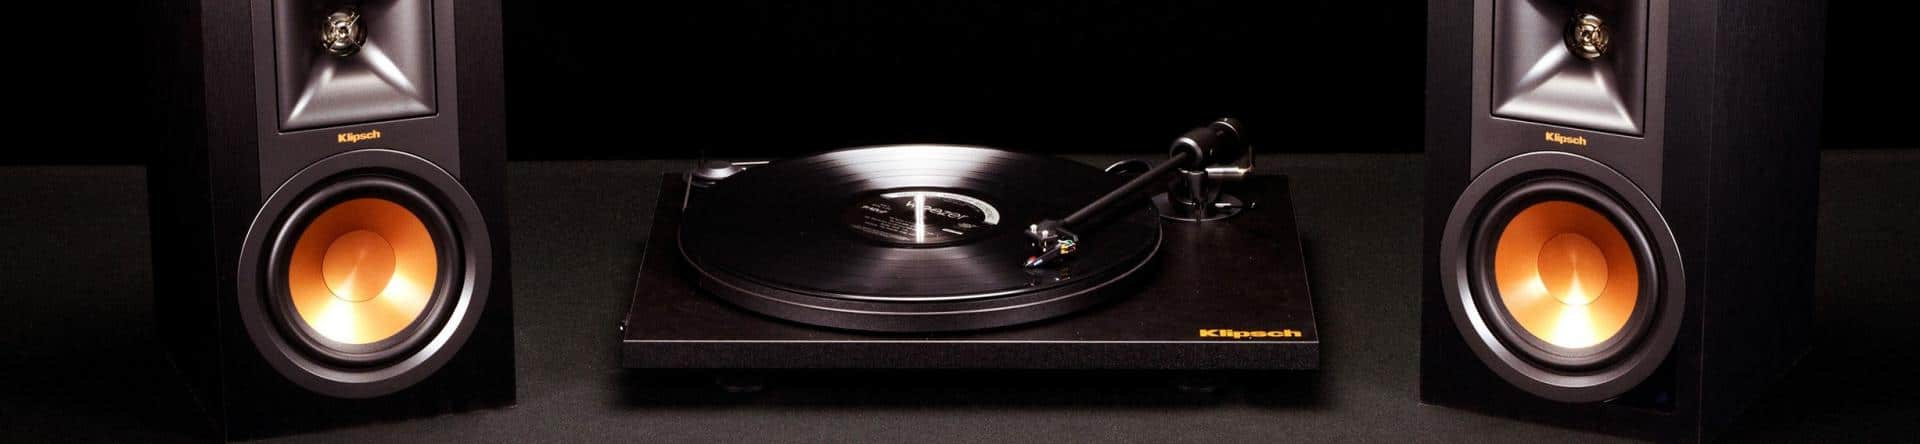 How to Set Up a Turntable – Principal Things You Need to Know